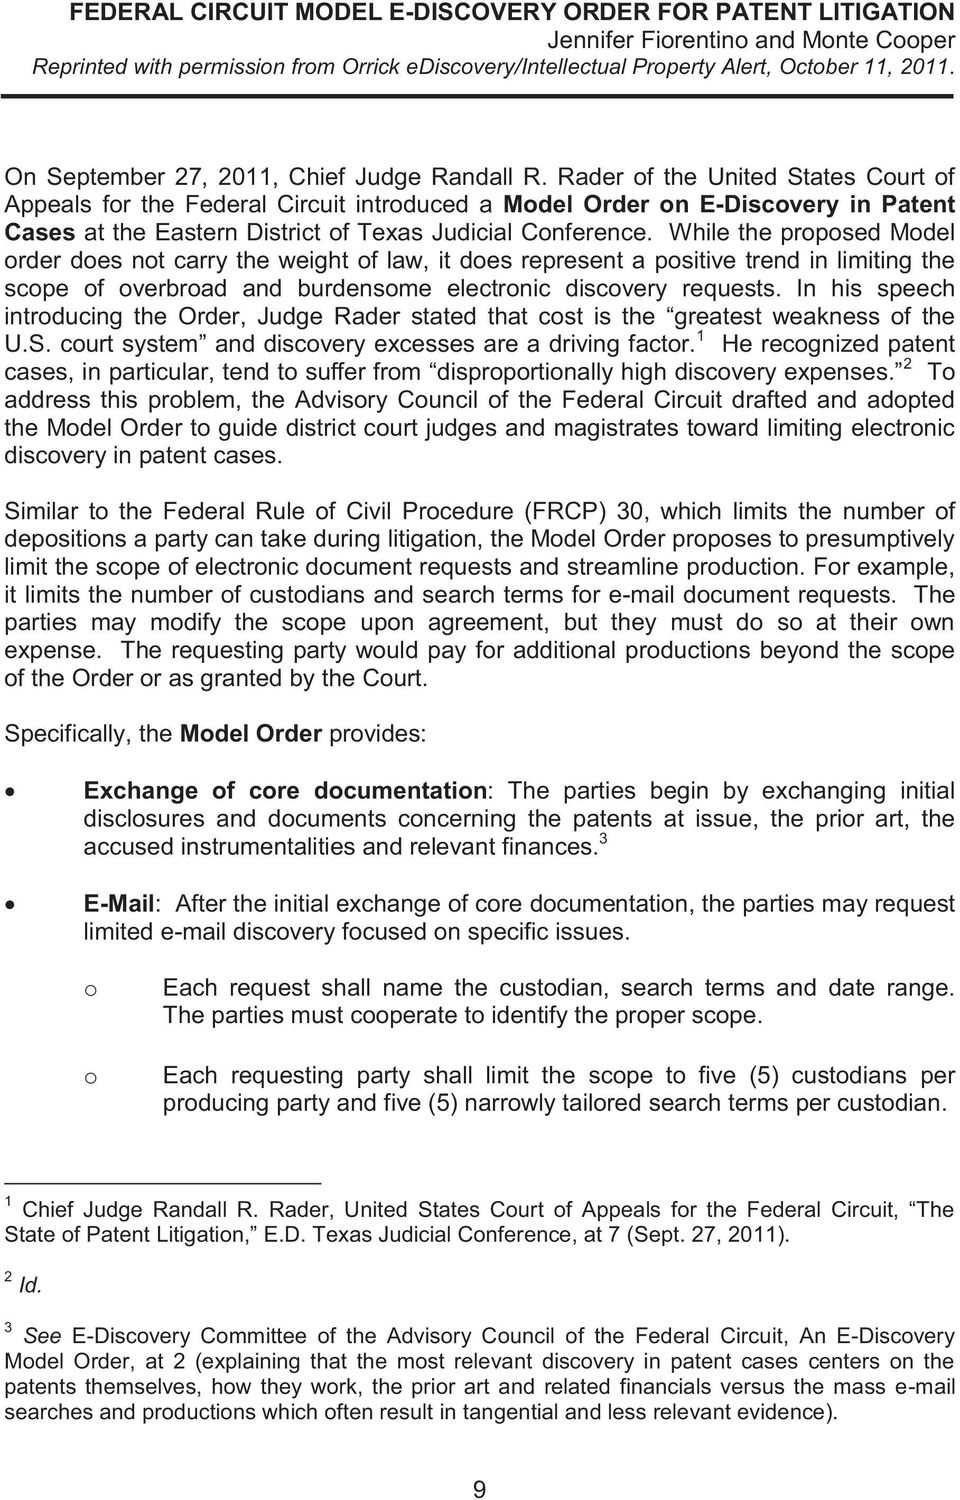 Rader of the United States Court of Appeals for the Federal Circuit introduced a Model Order on E-Discovery in Patent Cases at the Eastern District of Texas Judicial Conference.